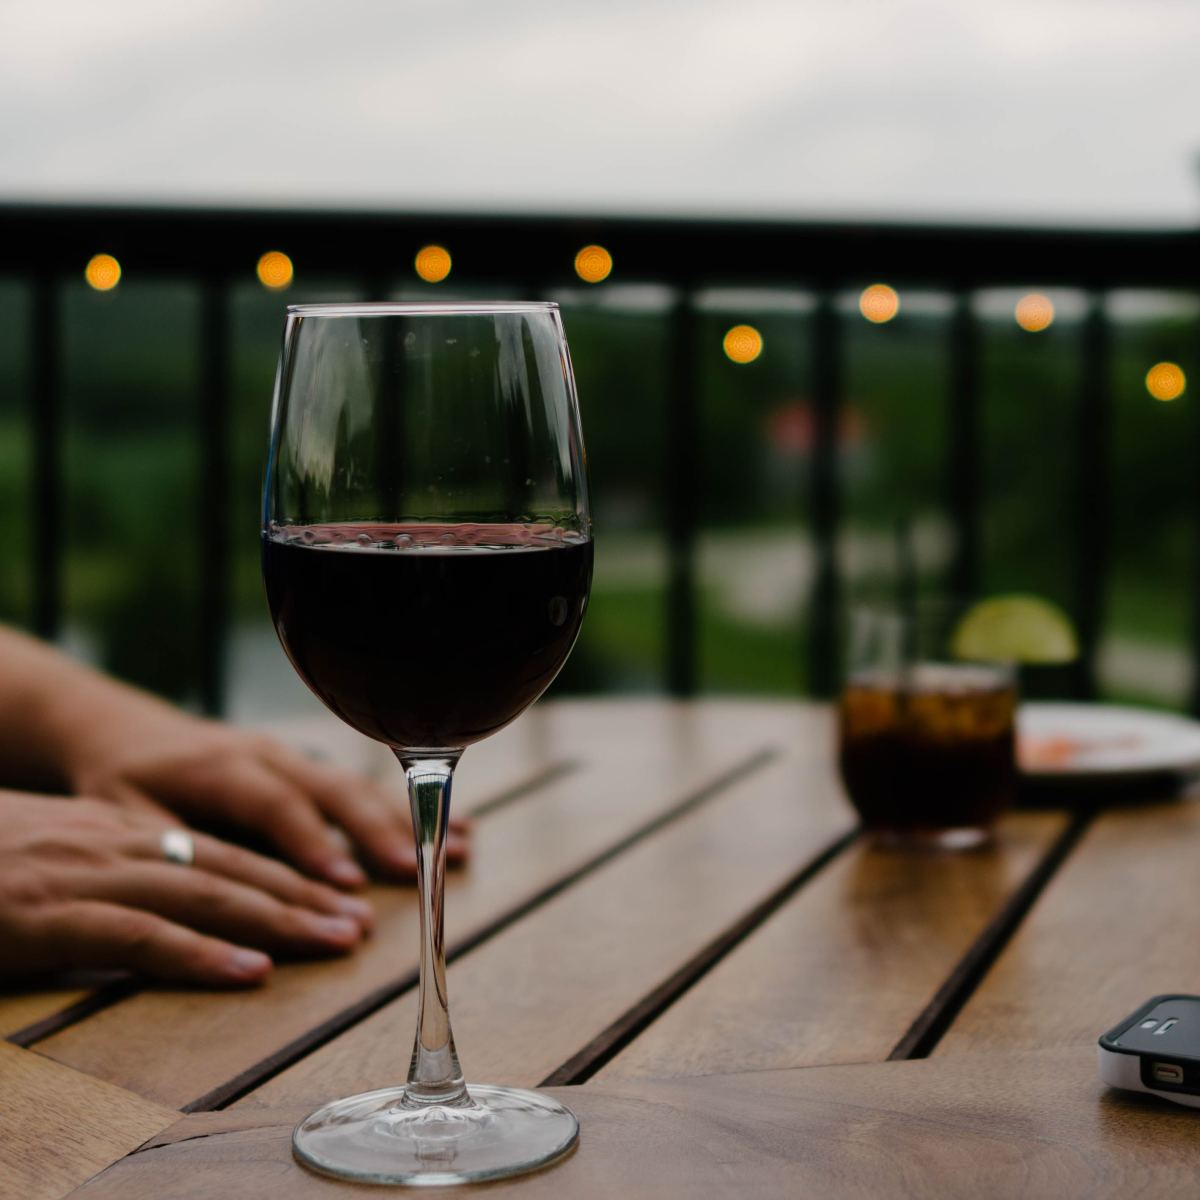 Are you looking to capitalize on your love of wine?